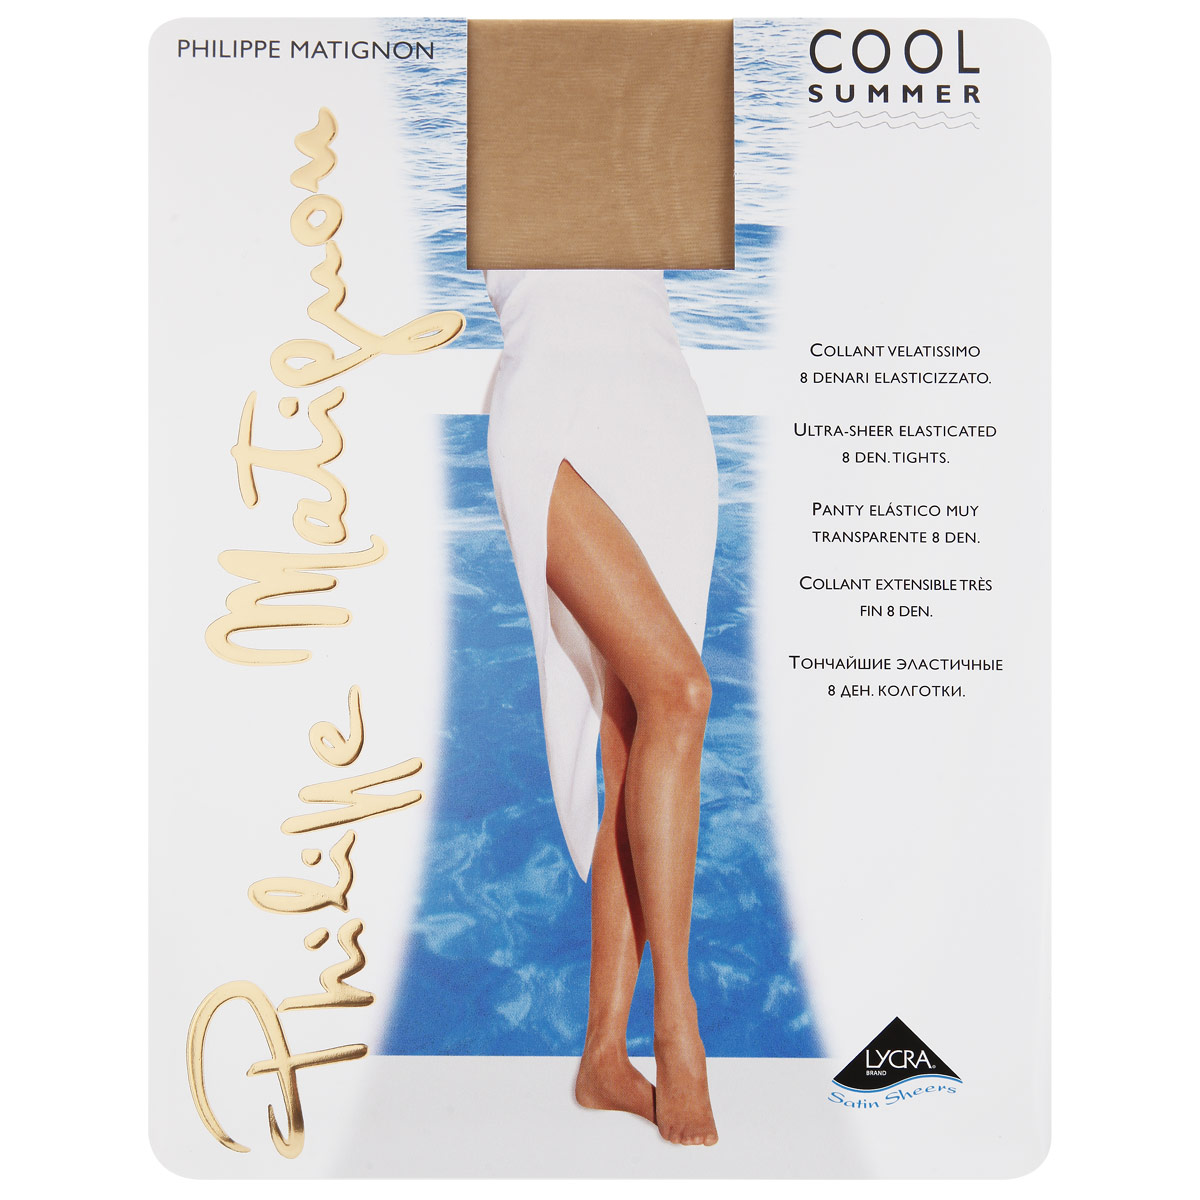 Колготки Philippe Matignon Cool Summer 8. Playa Nature (бежевый). Размер 4-L mcd200 16io1 [west] quality goods page 5